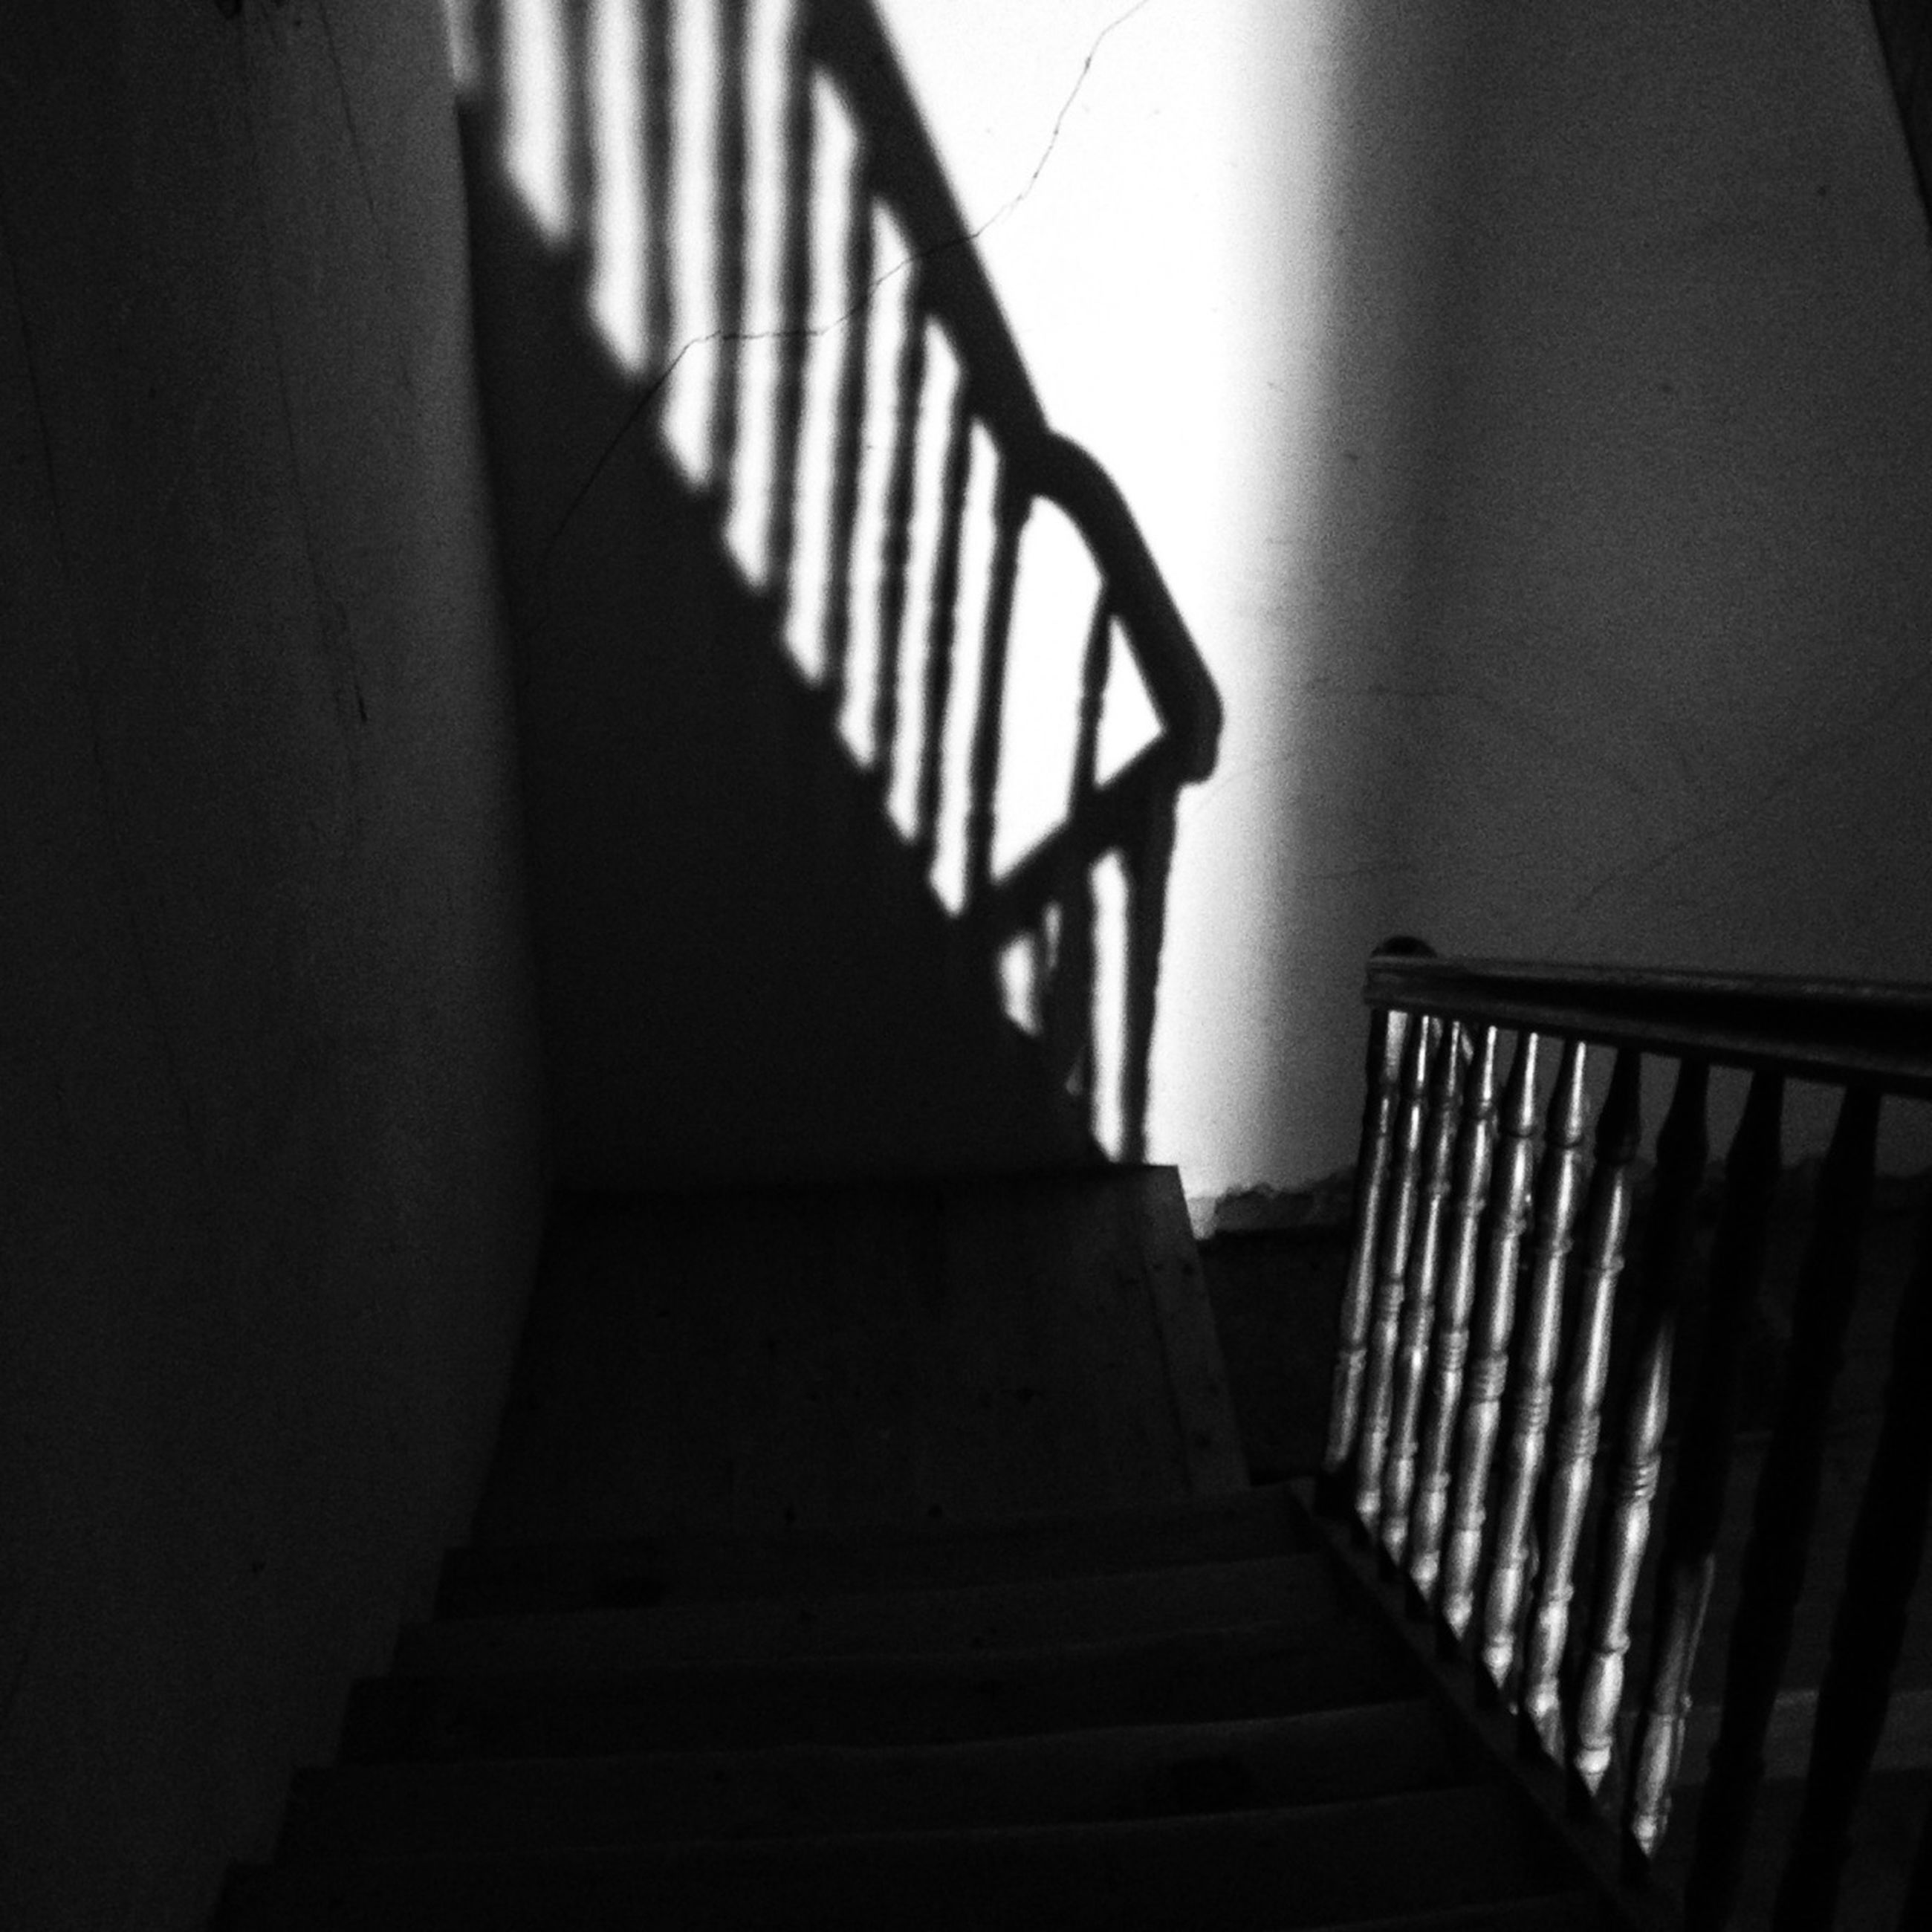 indoors, railing, staircase, steps and staircases, steps, built structure, architecture, shadow, low angle view, sunlight, wall - building feature, home interior, stairs, absence, empty, no people, building, the way forward, house, close-up